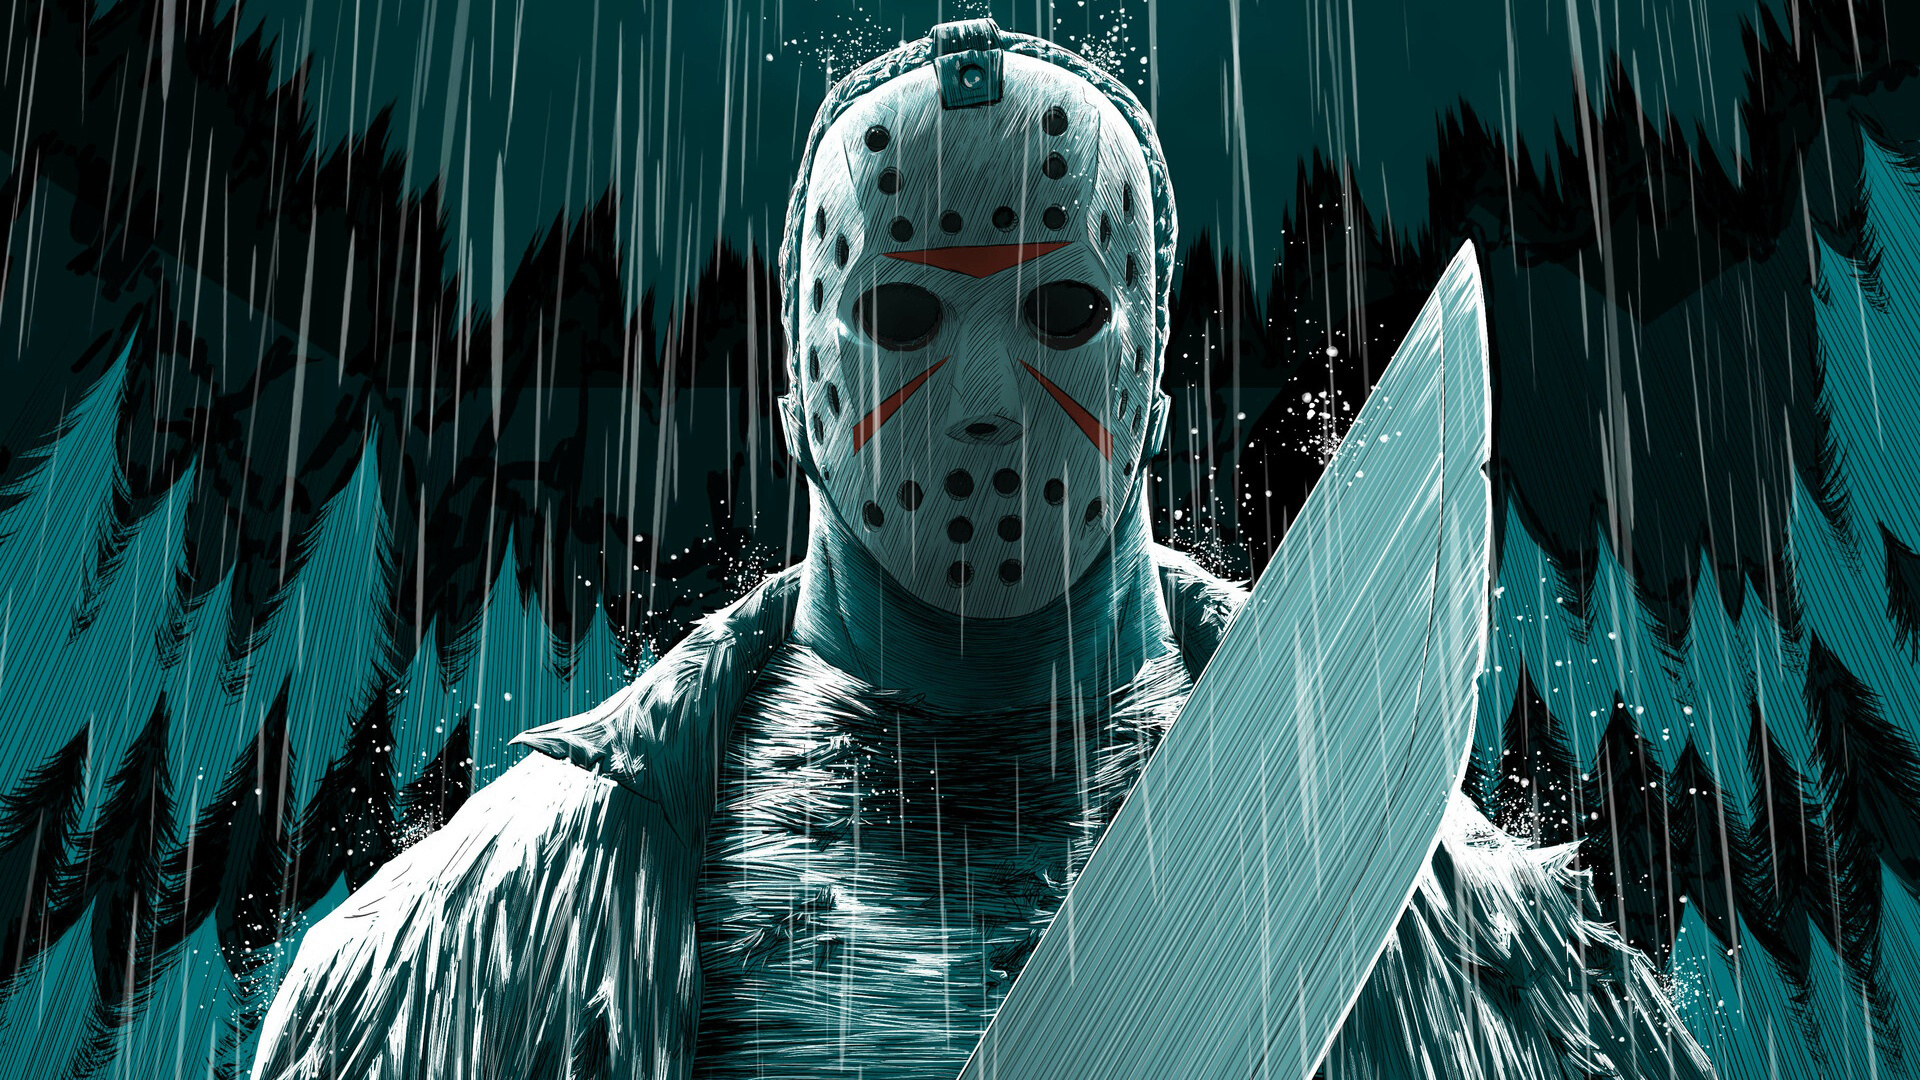 37-374482_wallpaper-of-jason-voorhees-mask-movie-friday-the_1.jpg